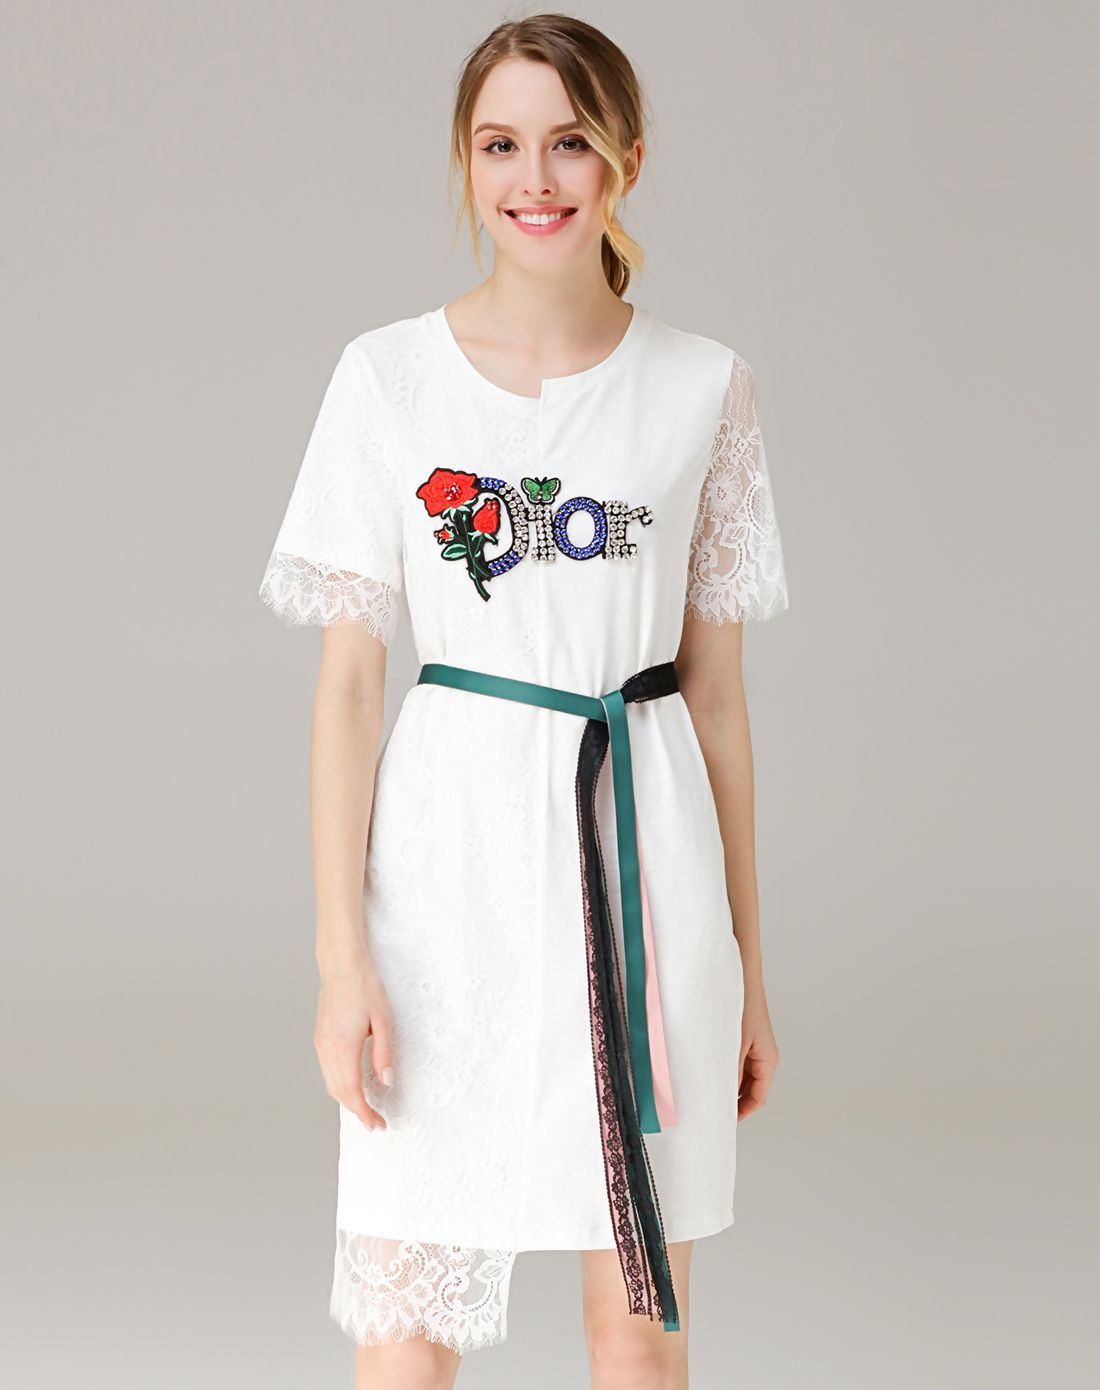 Adorewe vipme shift dressesdesigner sfeishow white lace paneled